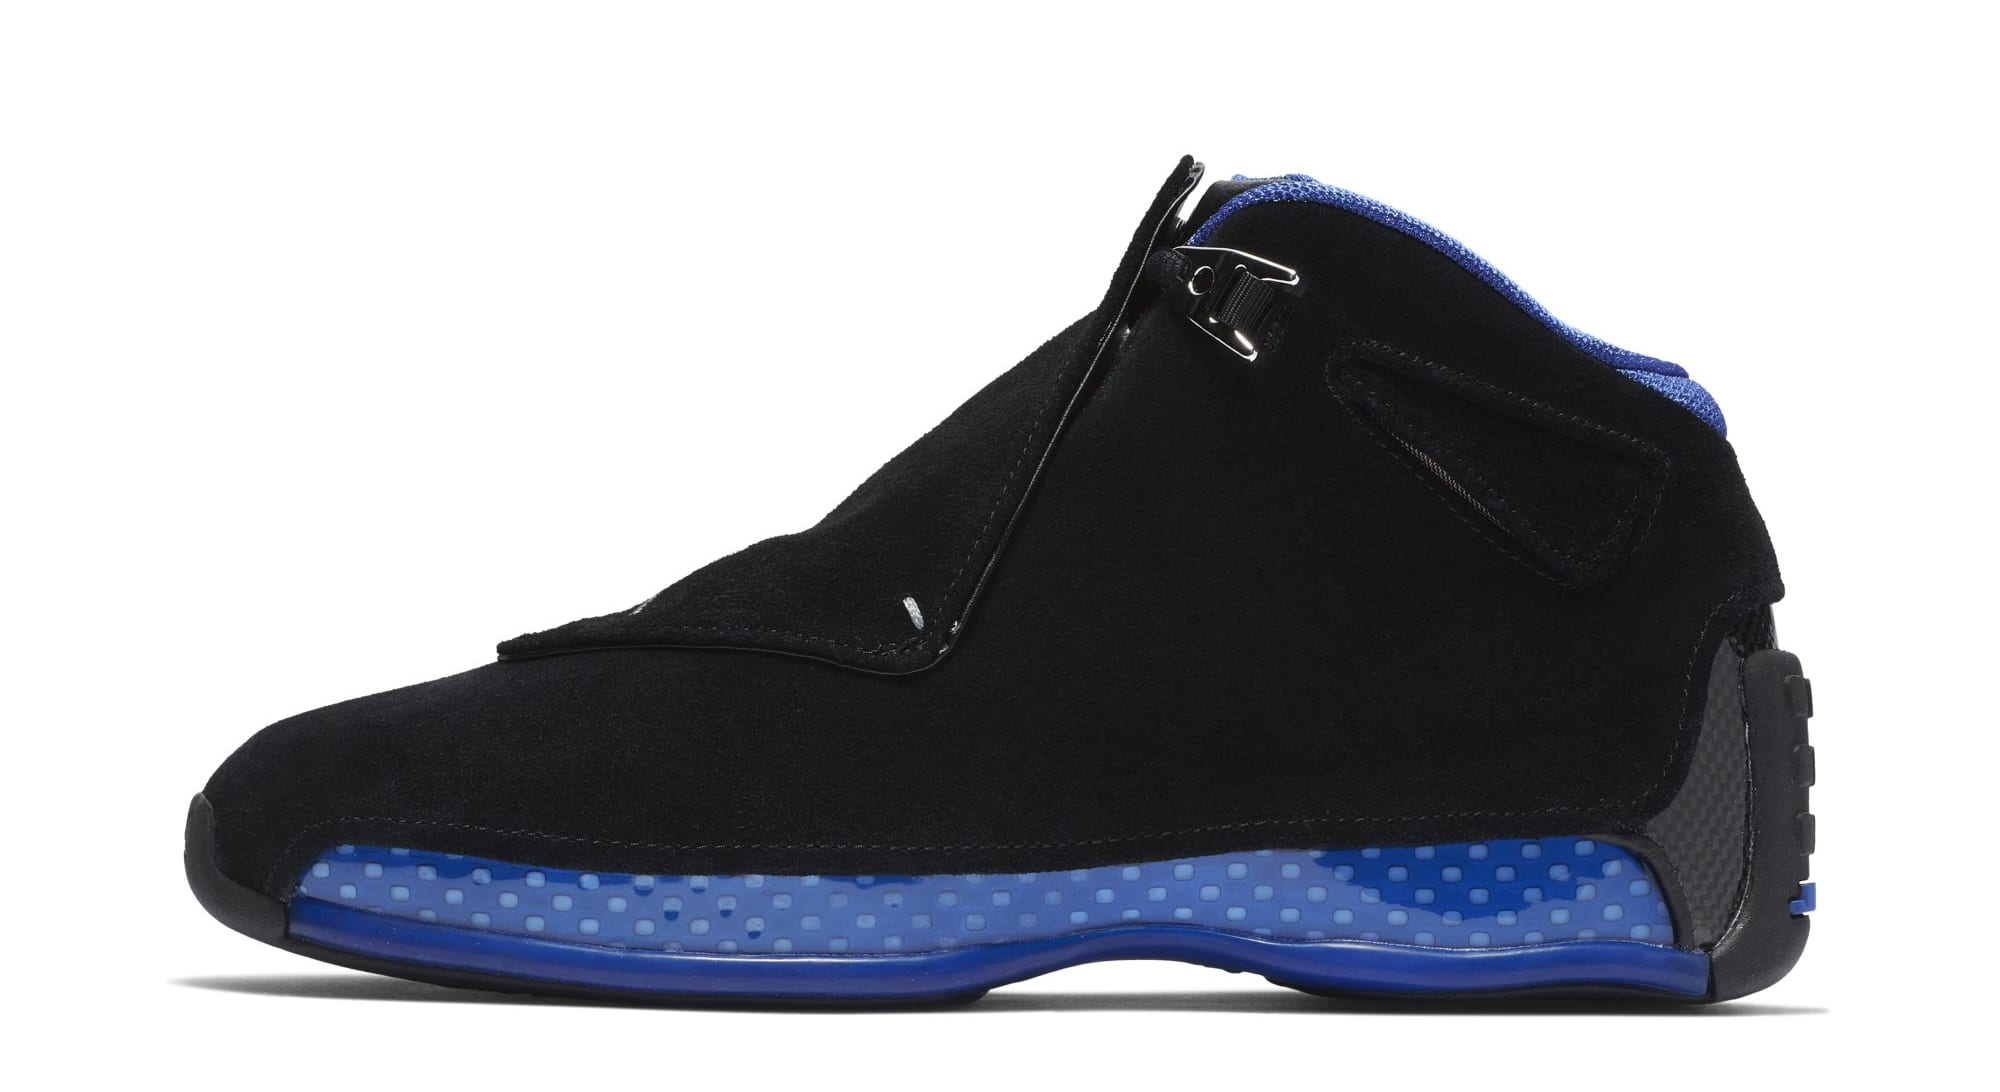 7048a1874a95 ... wholesale air jordan 18 black metallic silver sport royal aa2494 007  ada21 68868